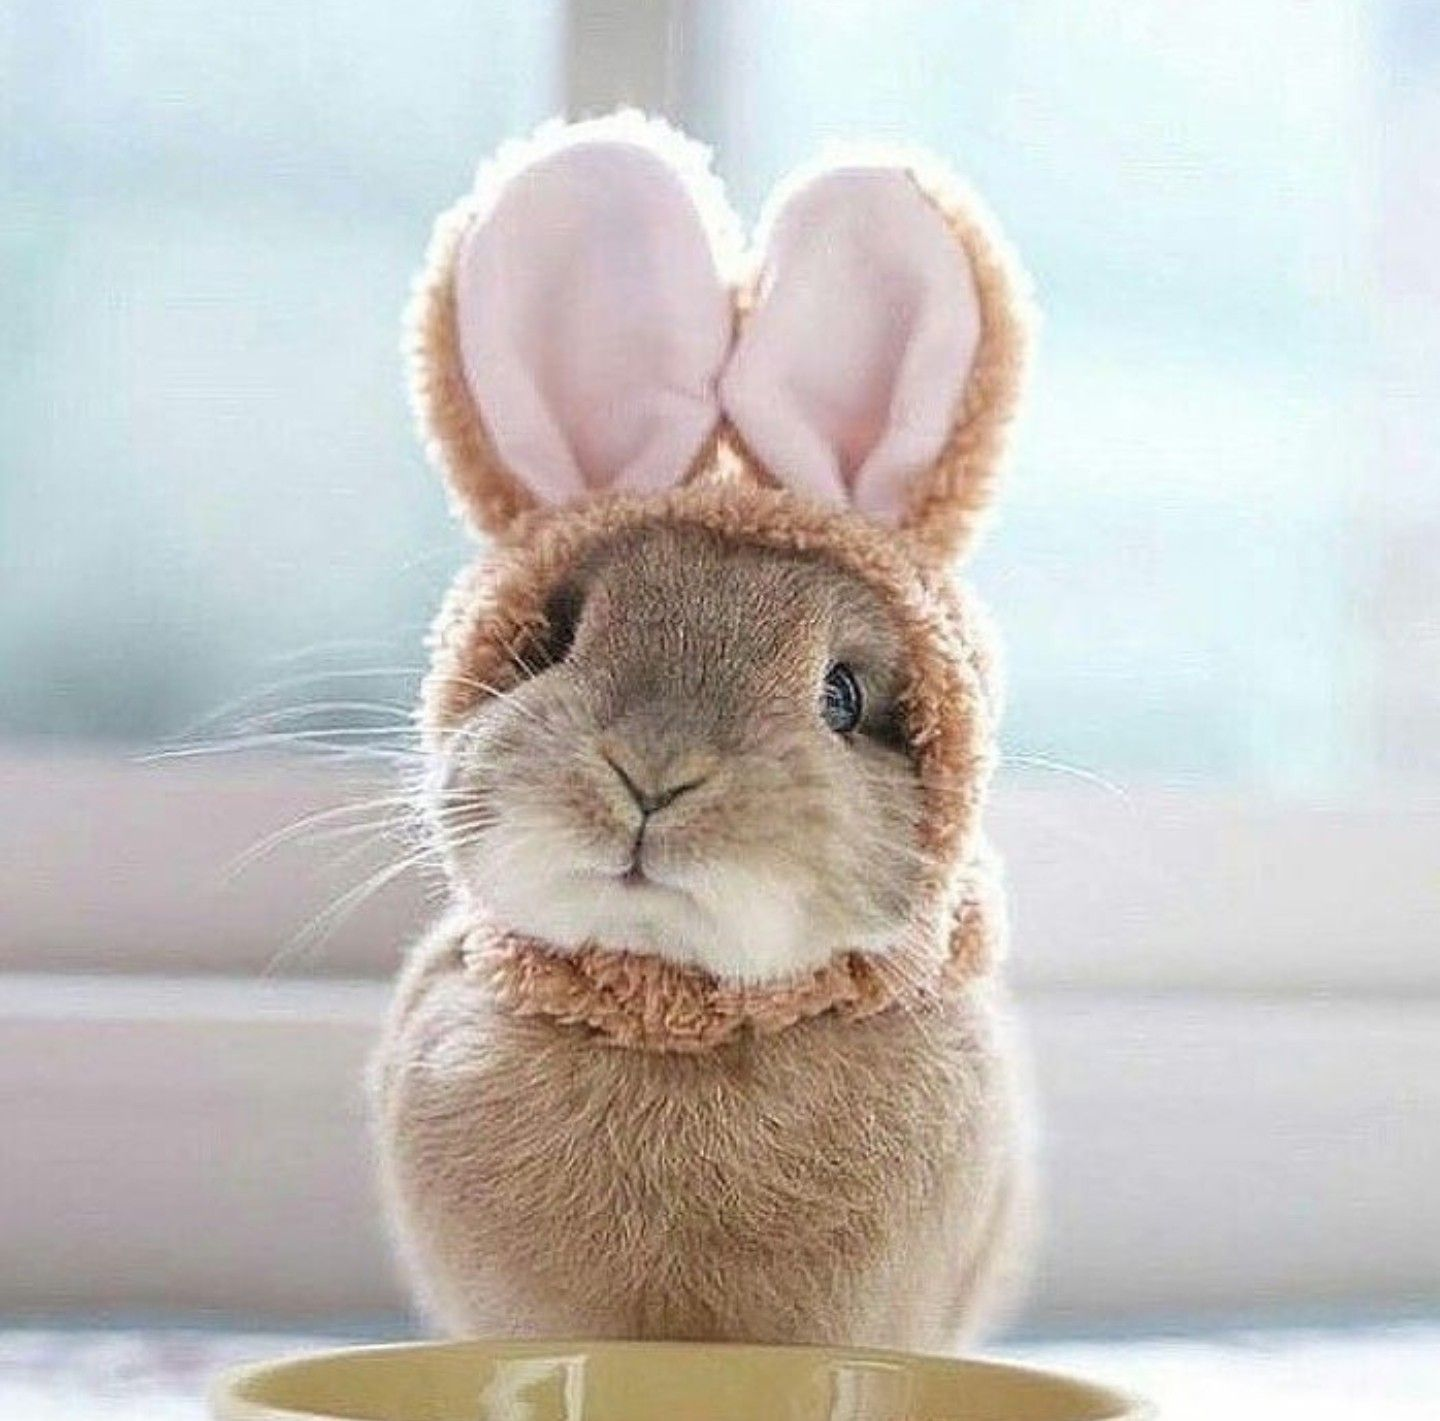 Pin by Terri K. Douglas on Easter | Cute baby animals, Cute animals, Animals